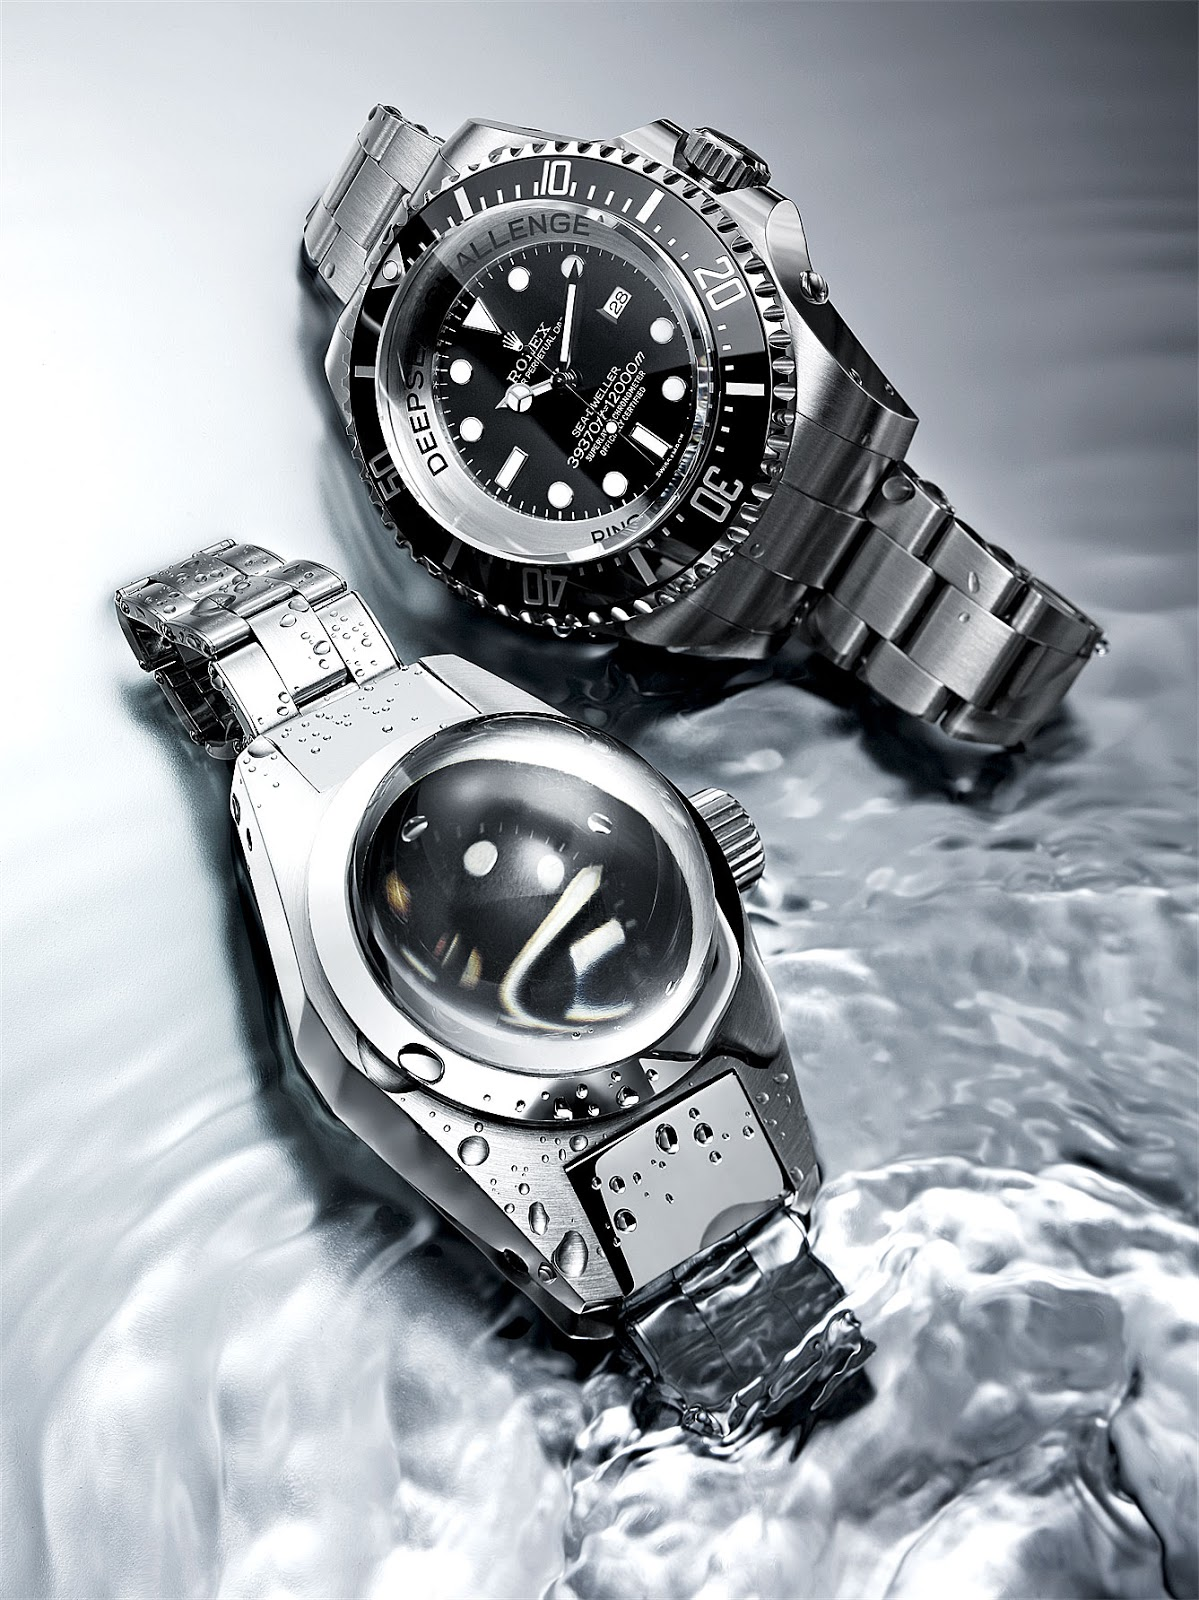 Rolex Sea-Dweller Achieve the Deepest Dives!